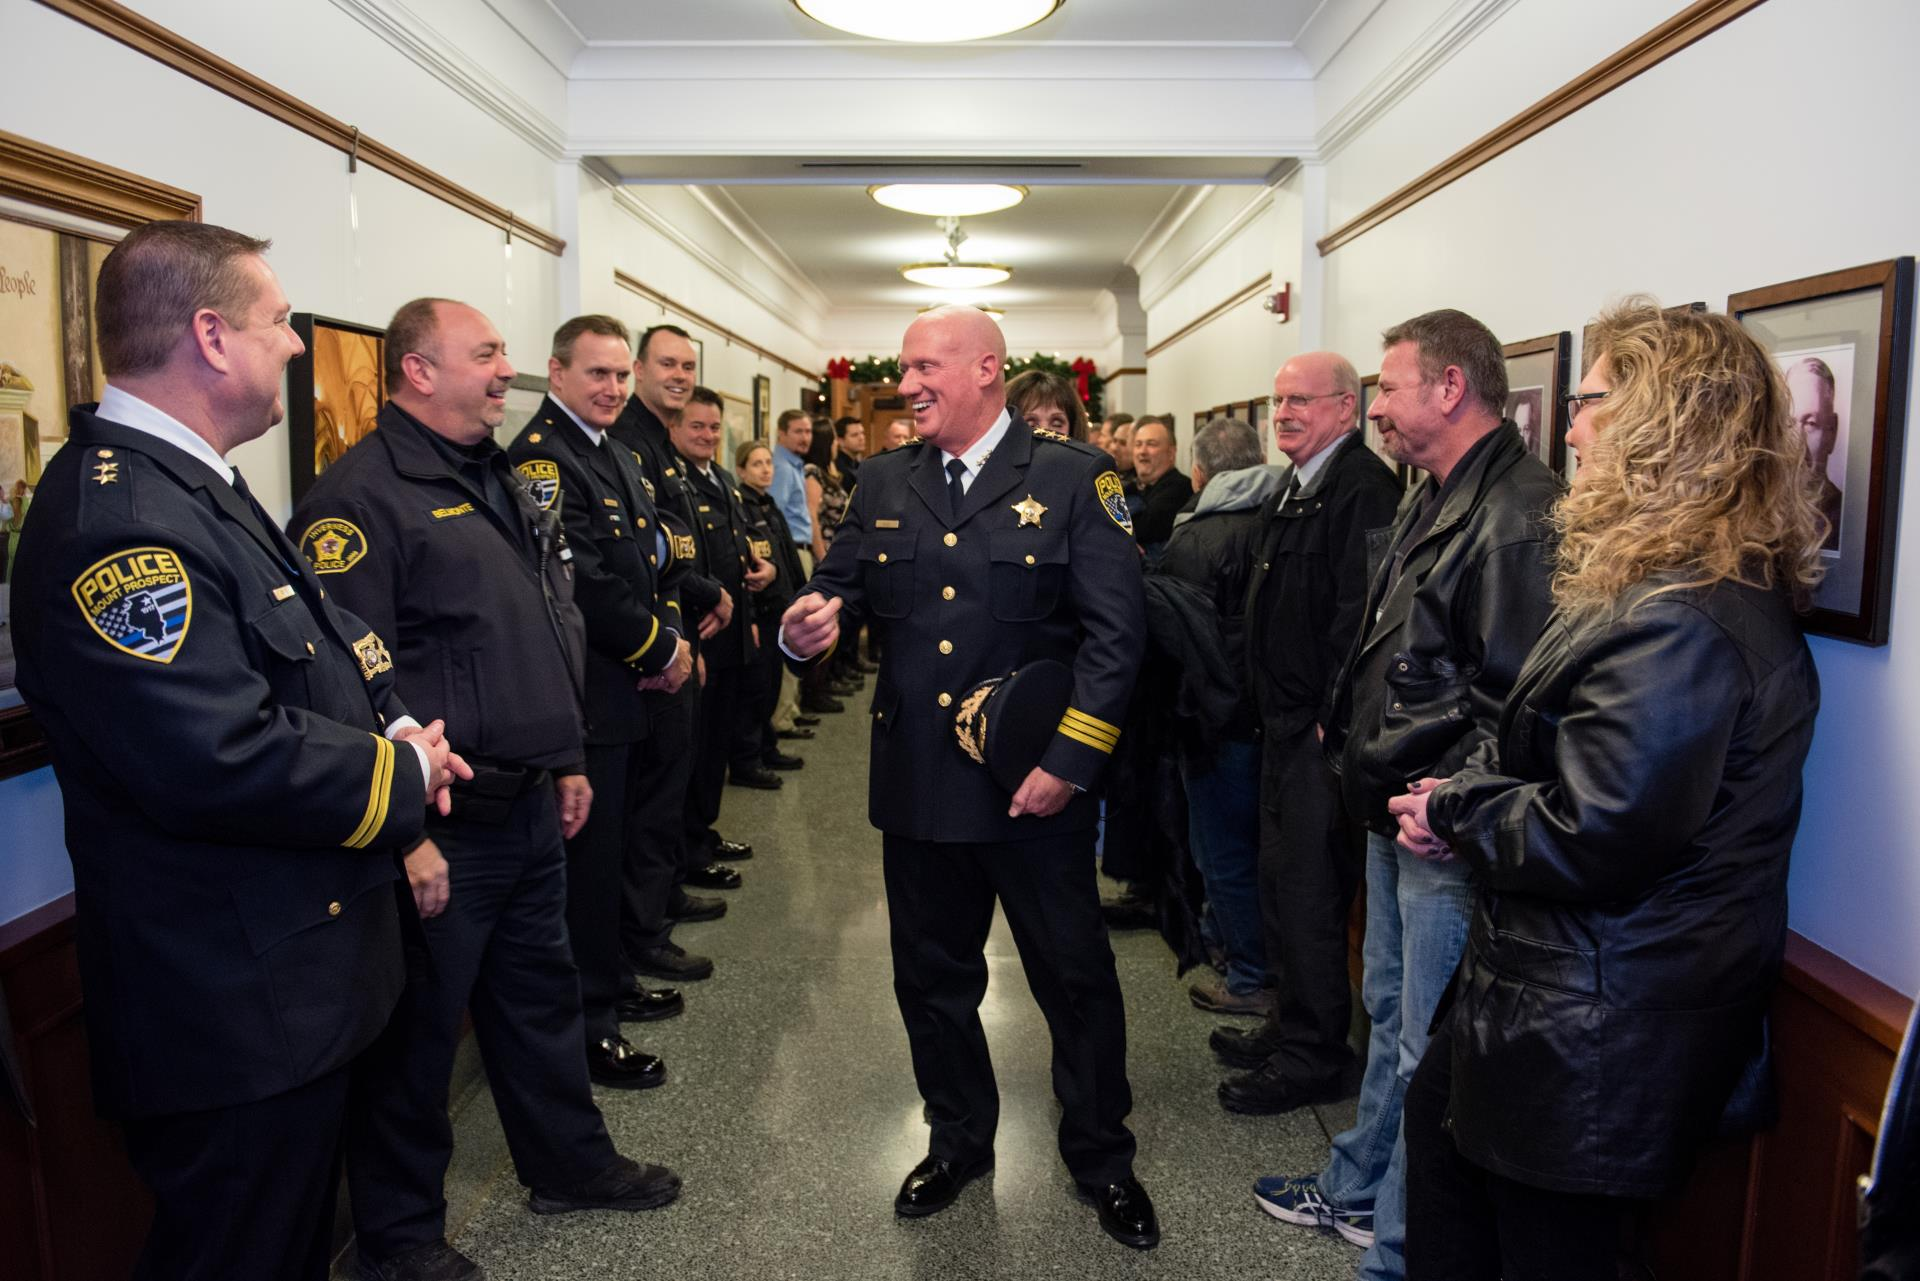 Chief Koziol Swearing-In Ceremony Final-4276